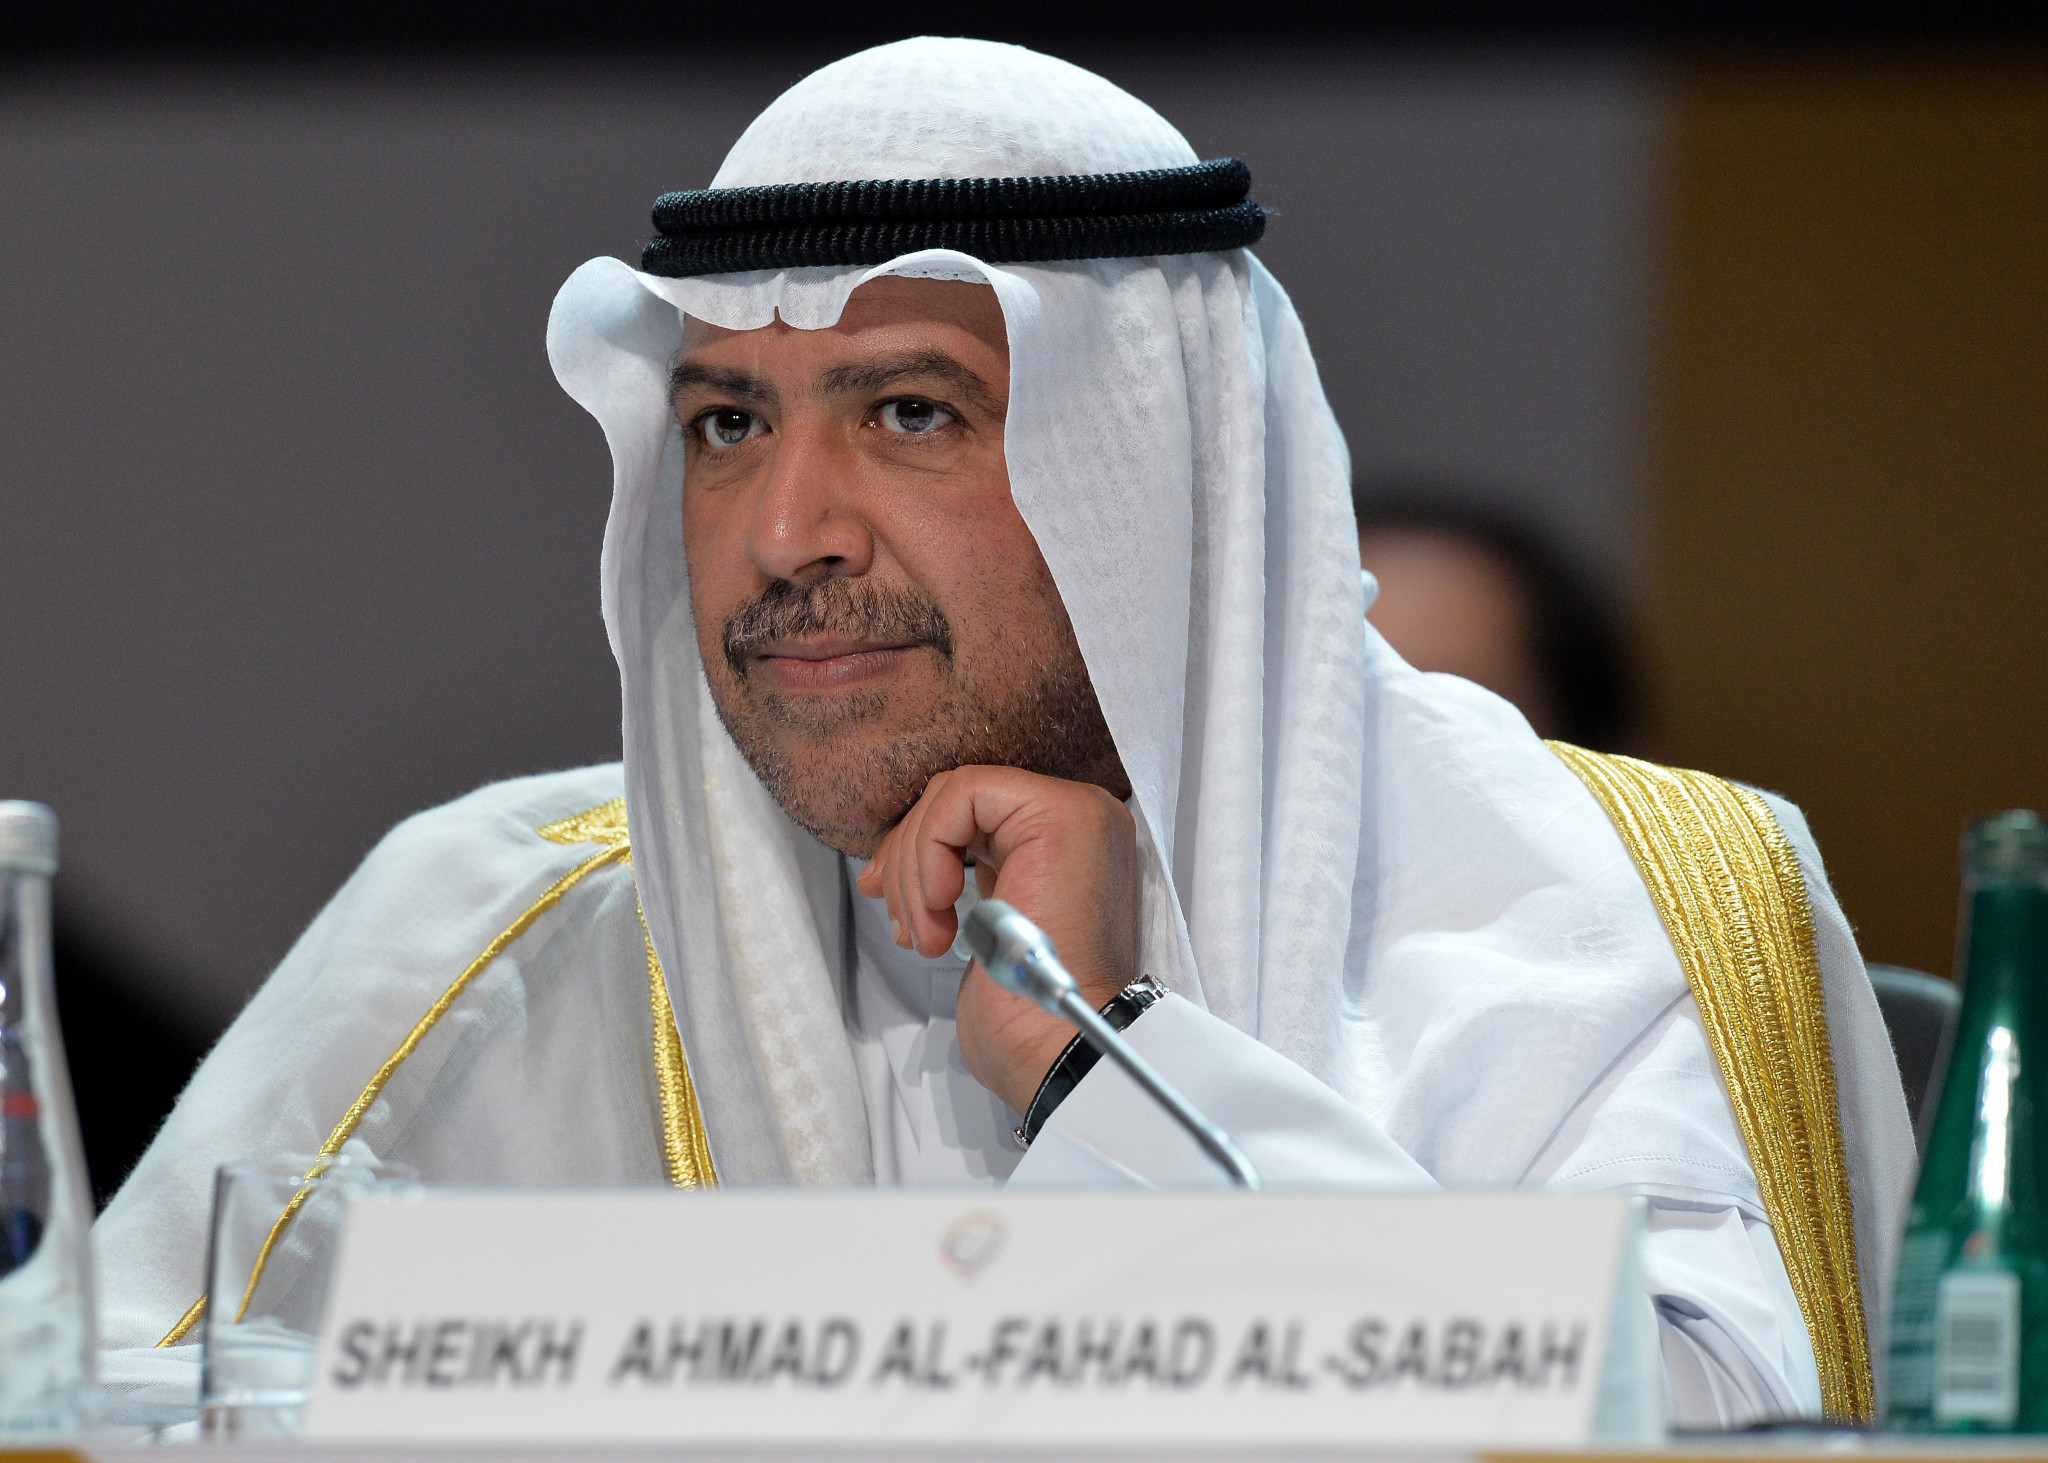 Sheikh Ahmad al-Fahad al-Sabah will have spent over a half-century on the IOC if he remains until the age of 80 ©Getty Images